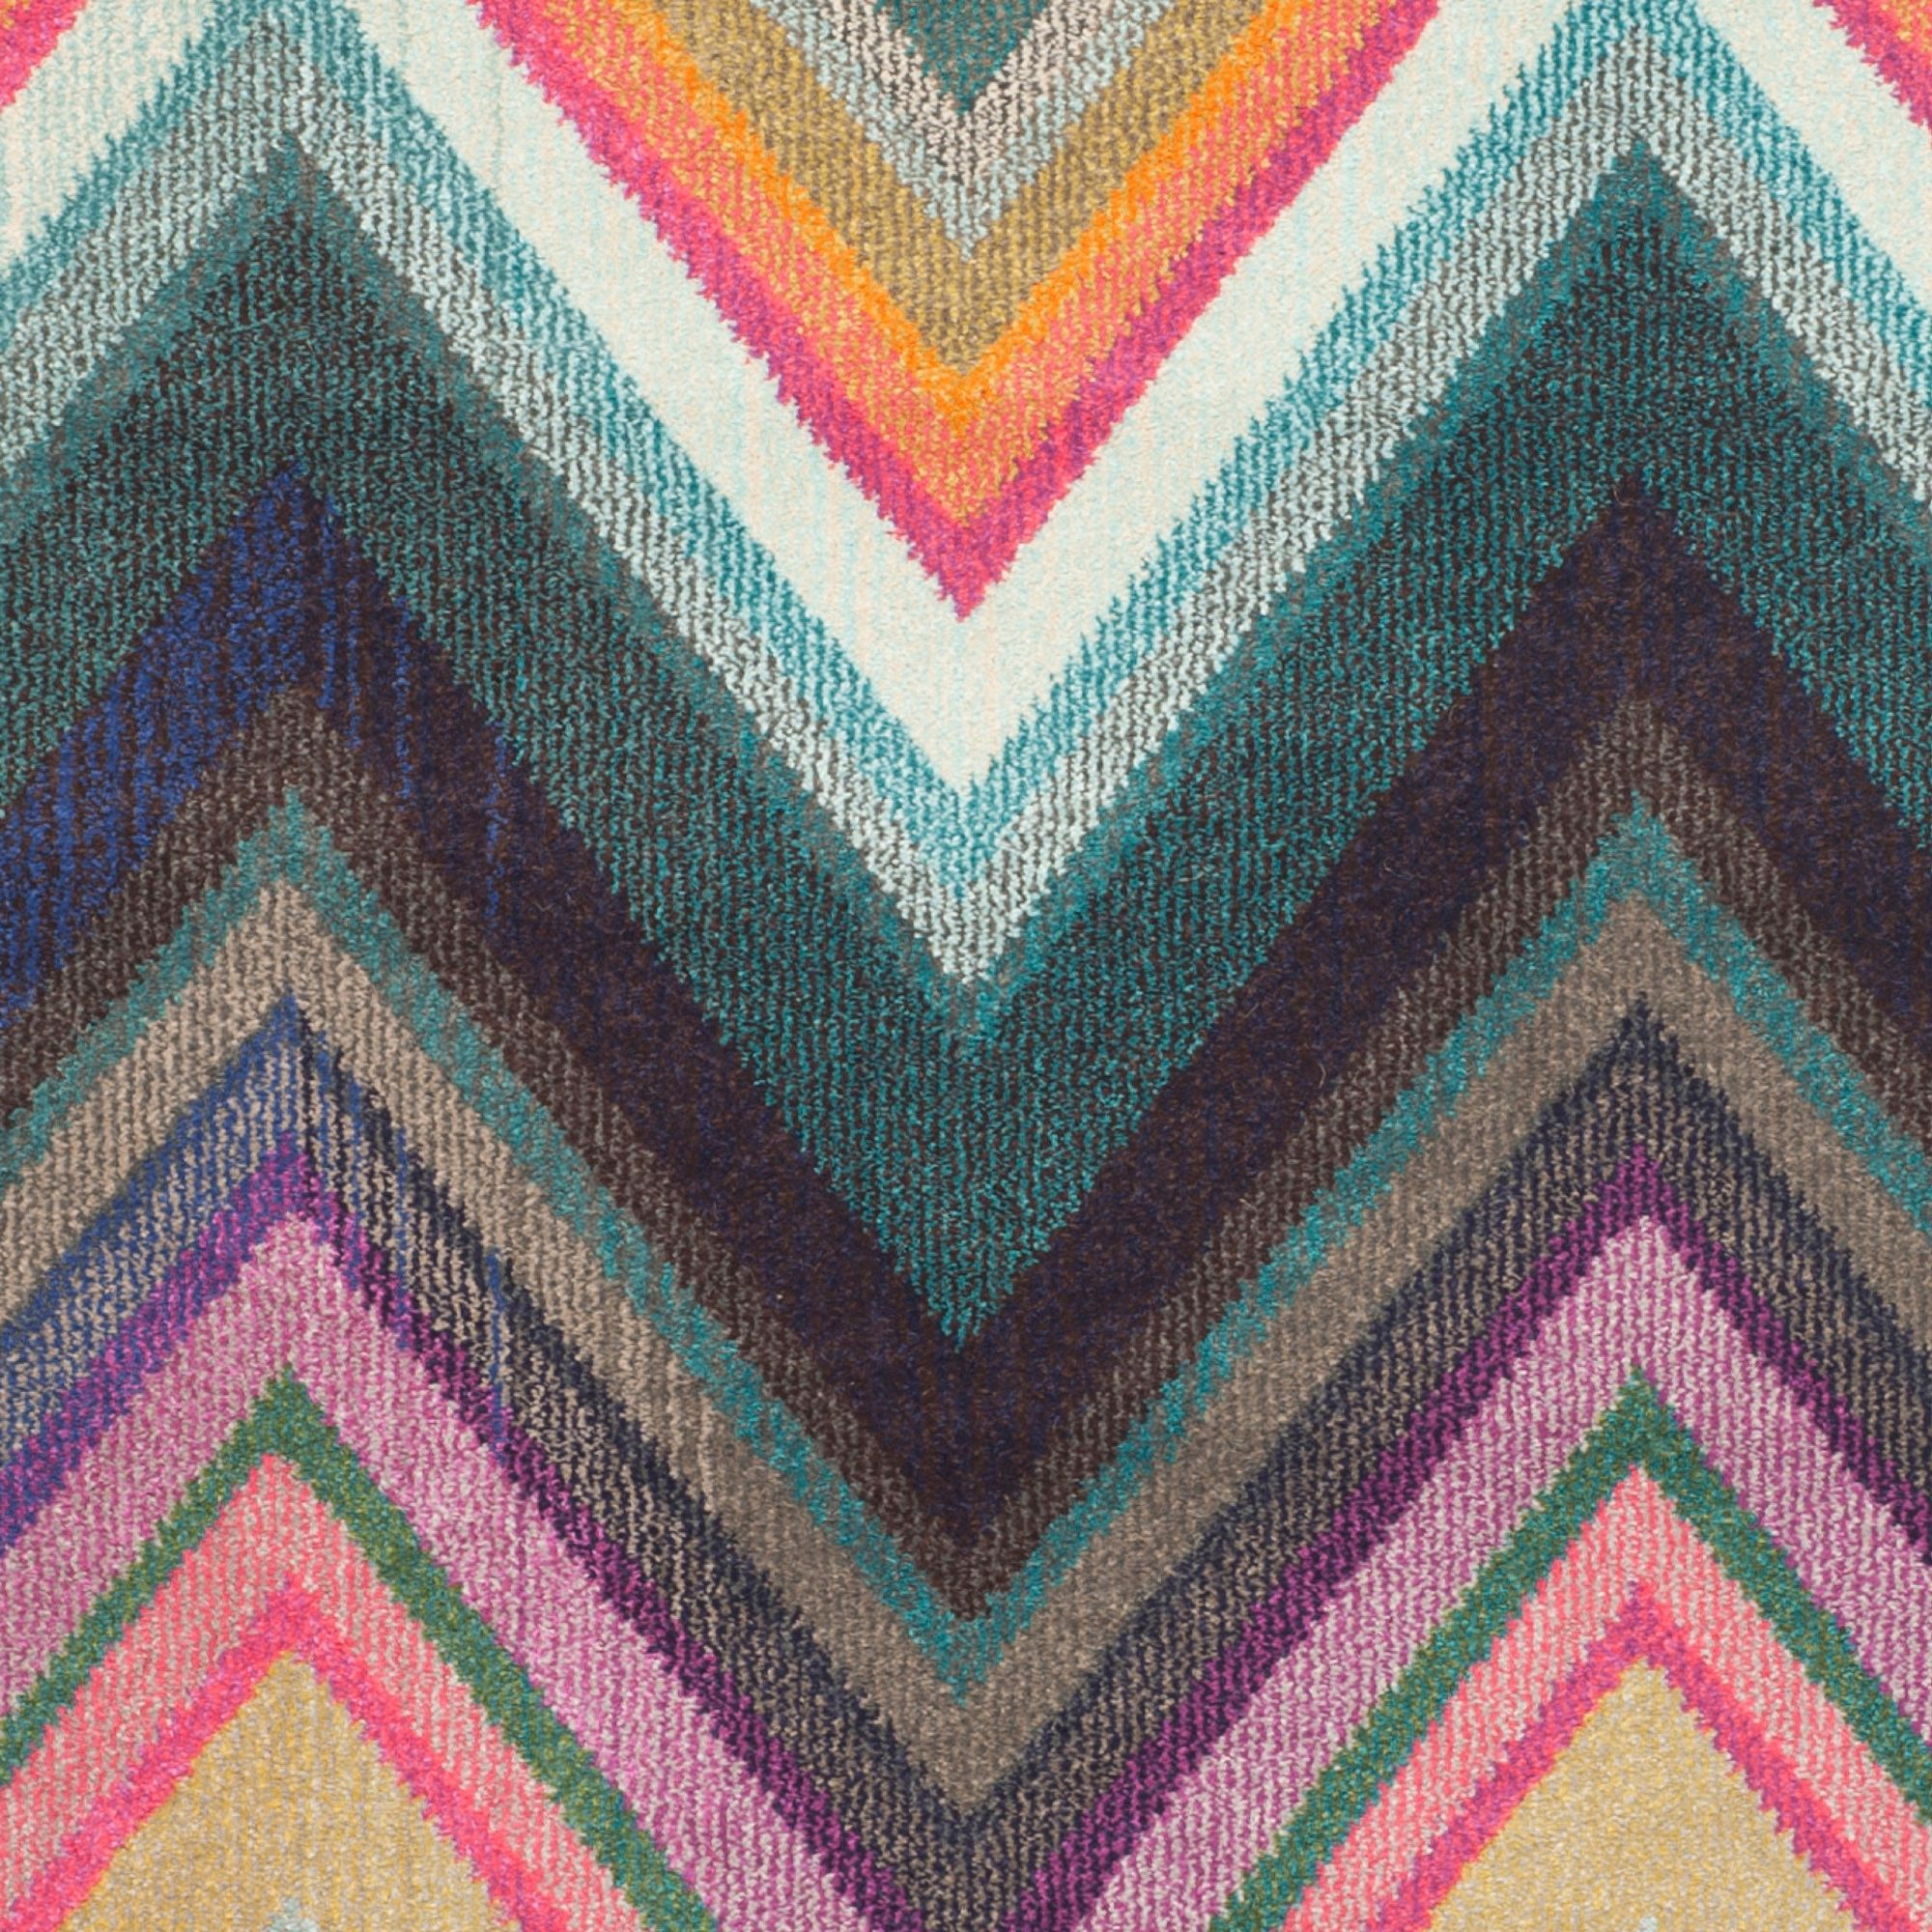 Safavieh Monaco Breana Power-Loomed Area Rug, Multi